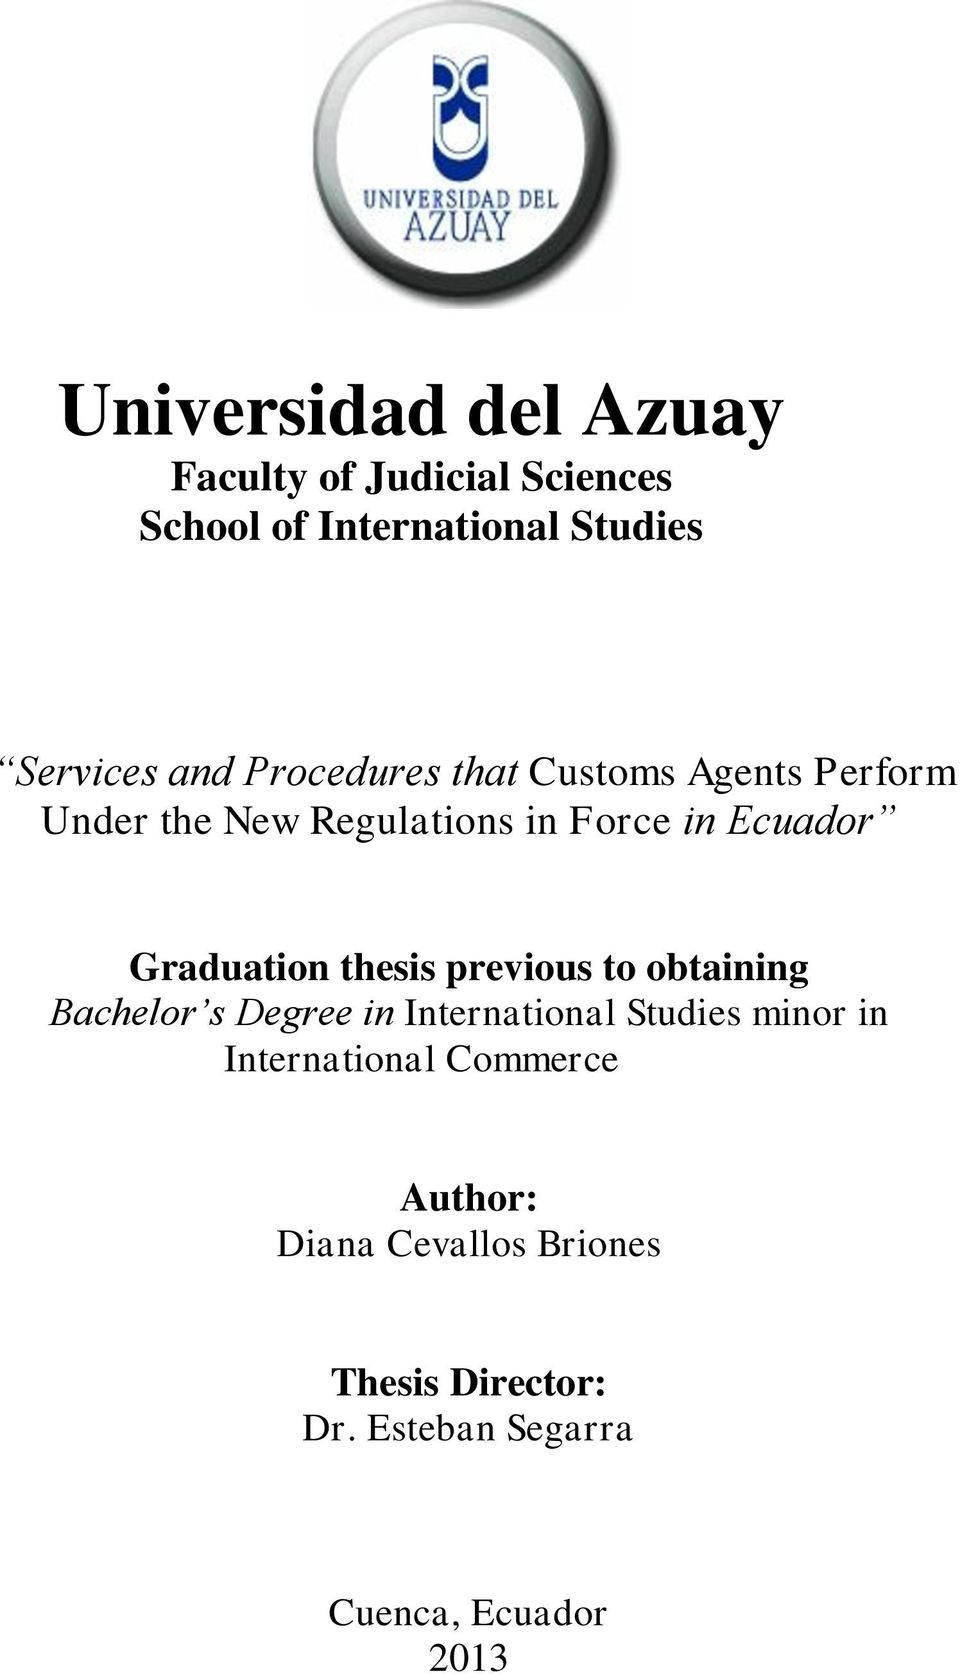 thesis previous to obtaining Bachelor s Degree in International Studies minor in International